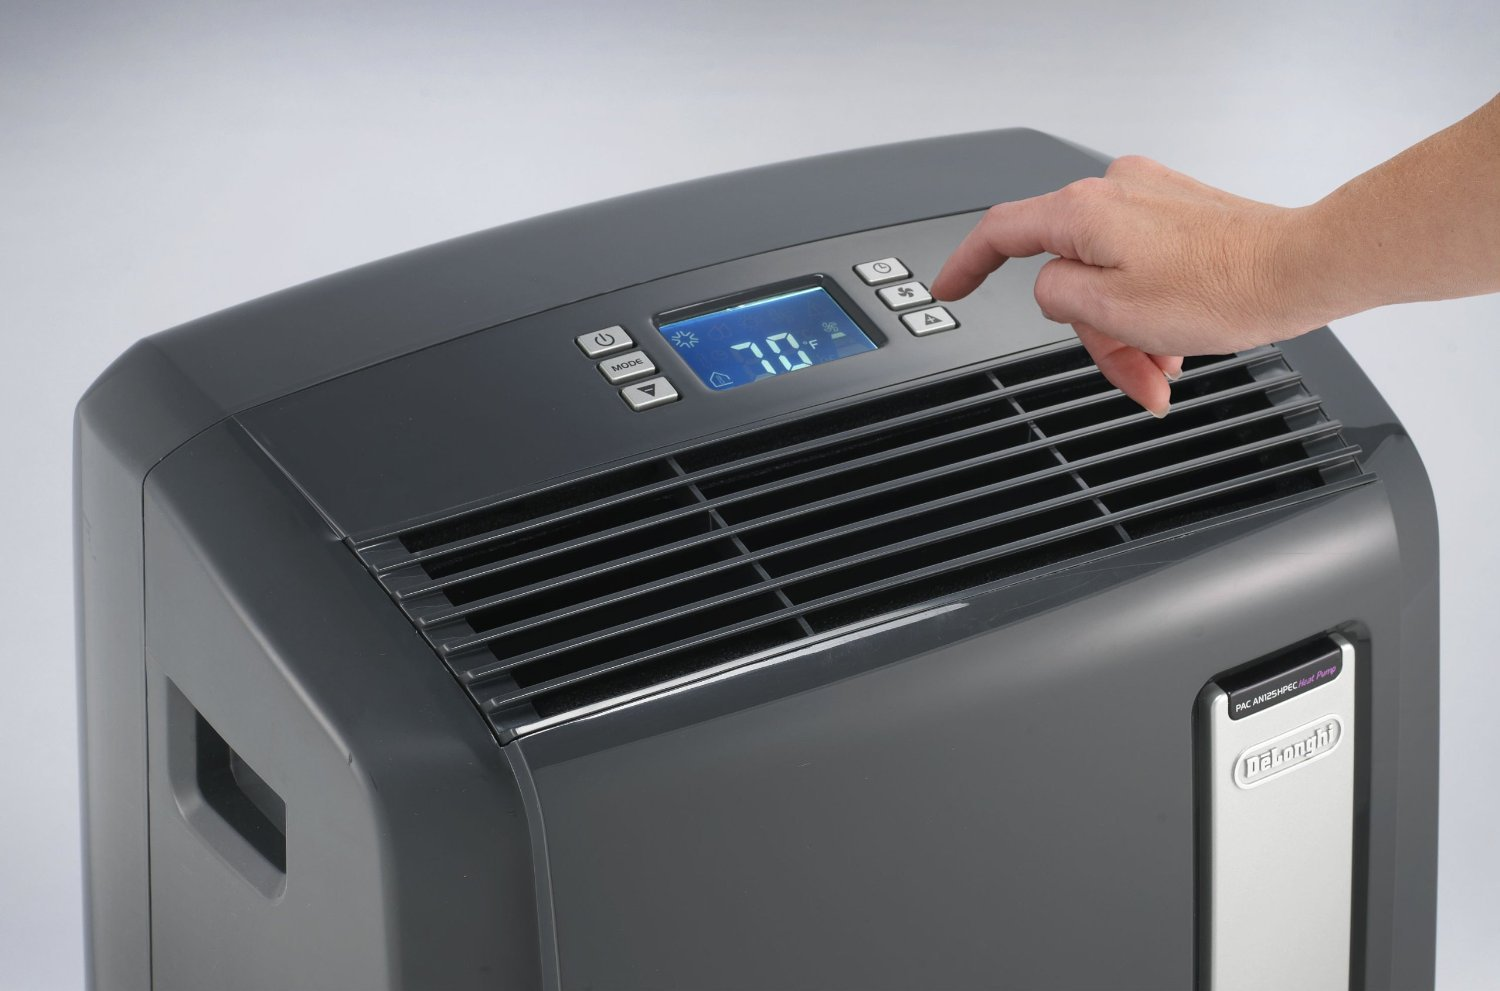 Delonghi portable air conditioner and heater - Portable Air Conditioner Heater